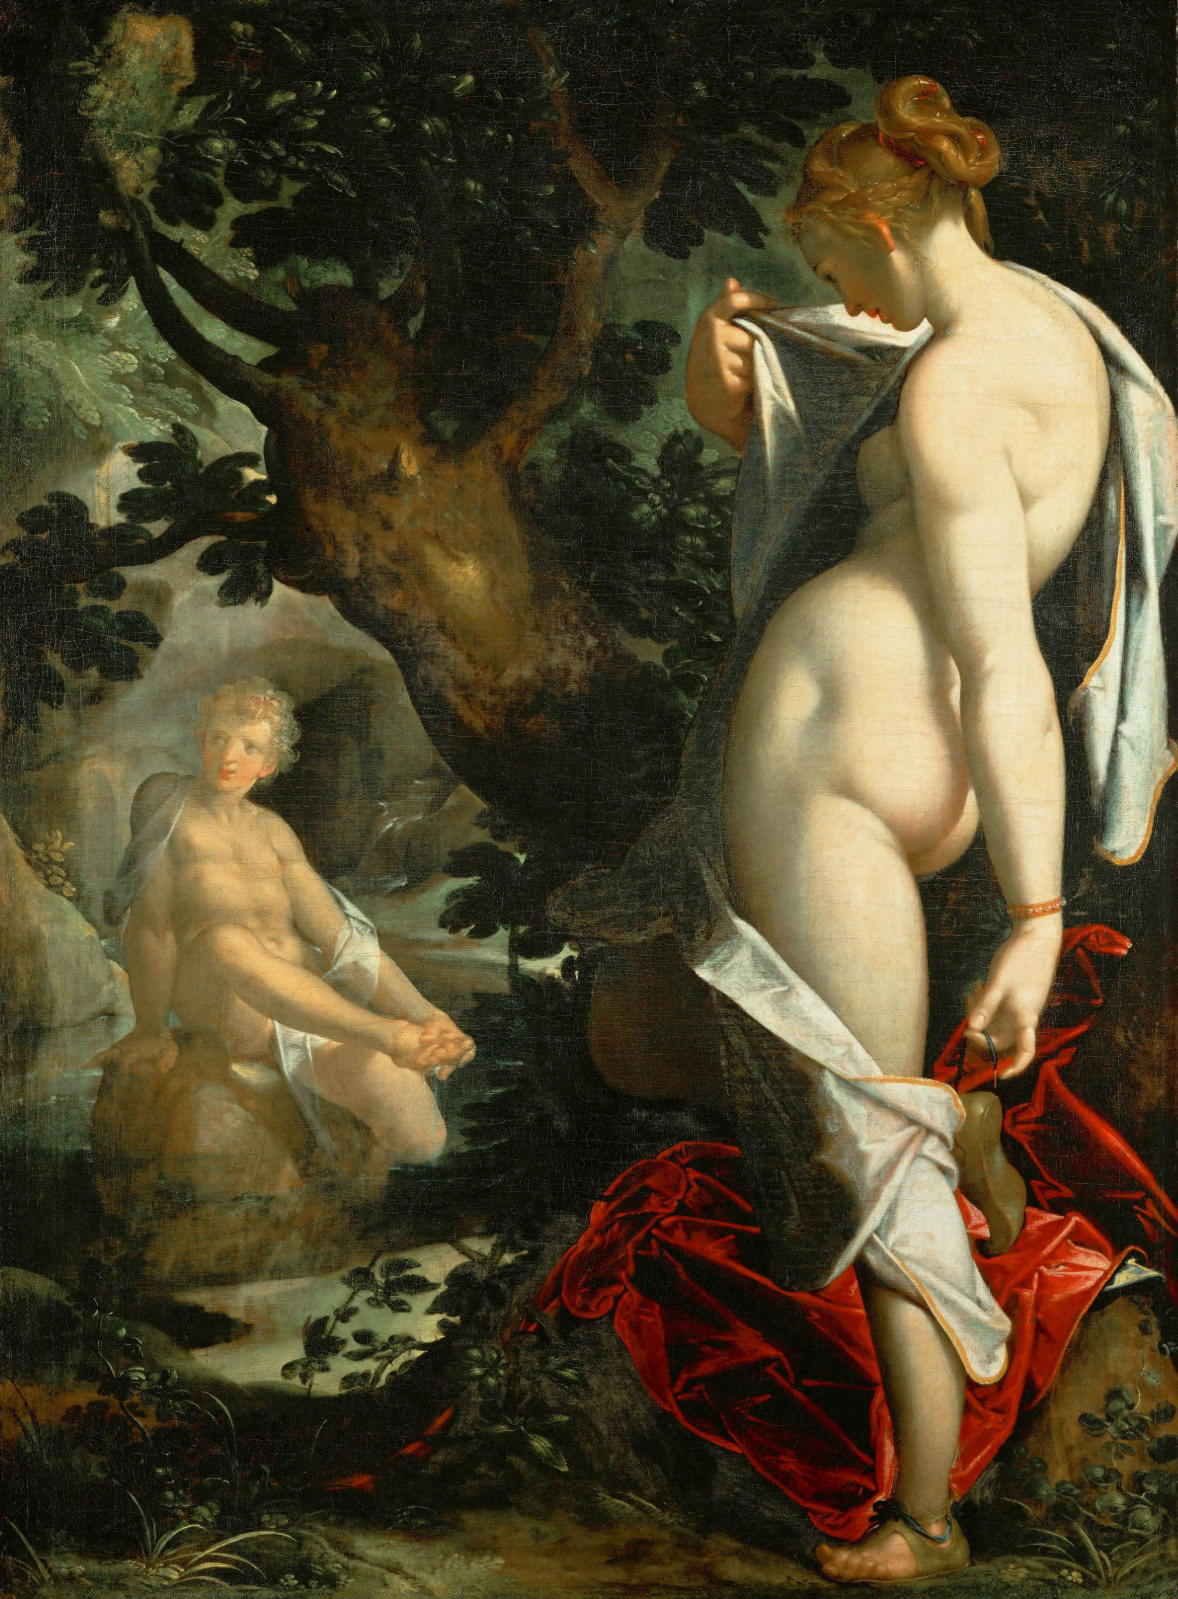 Hermaphroditos_and_Salmacis_by_Bartholomäus_Spranger